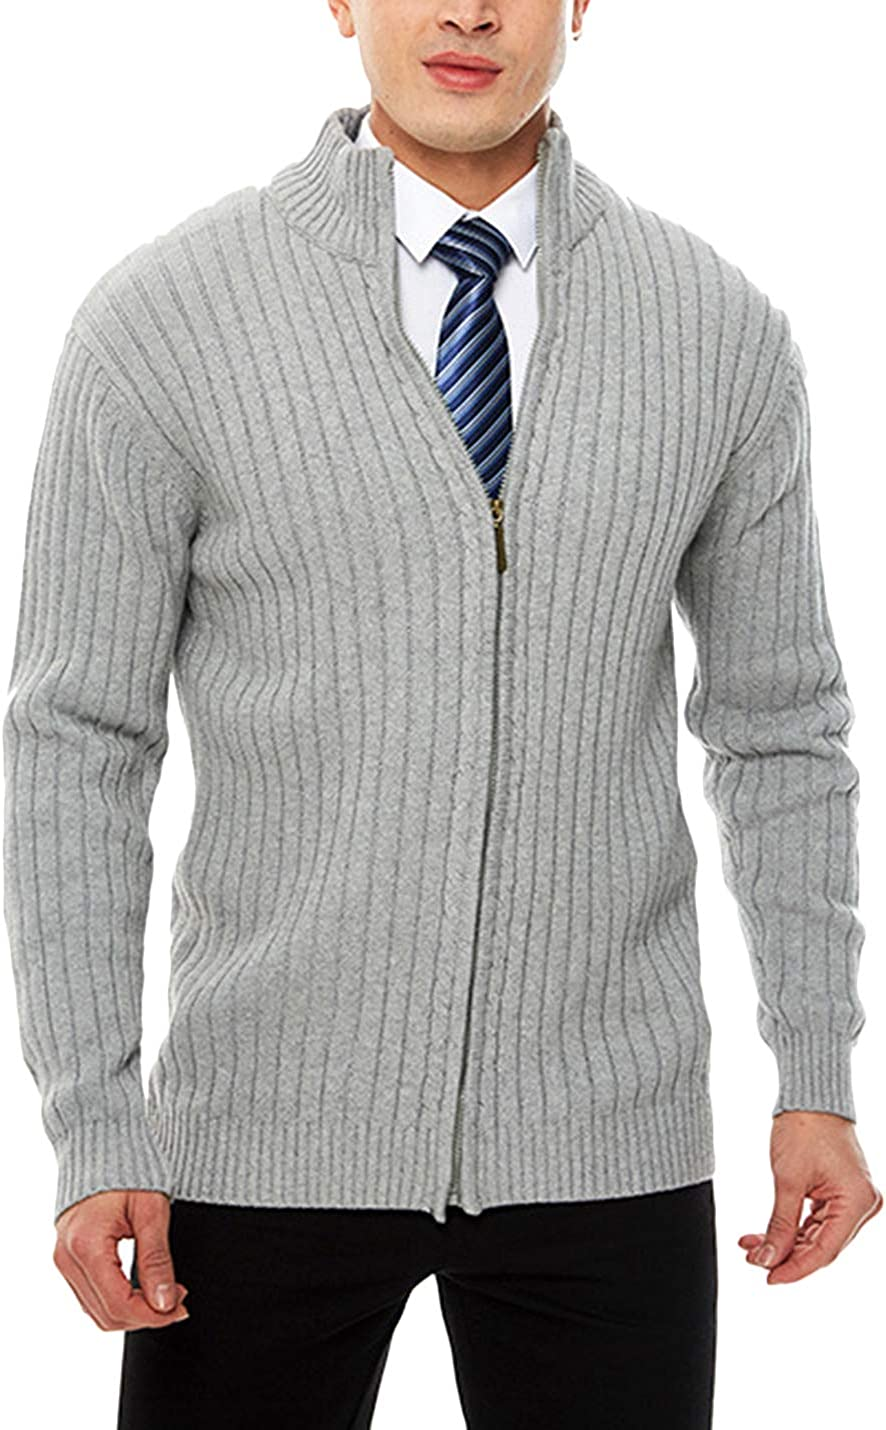 HaoMay Men's Business Casual Full Zip Long Sleeve Knitted Cardigans Sweater